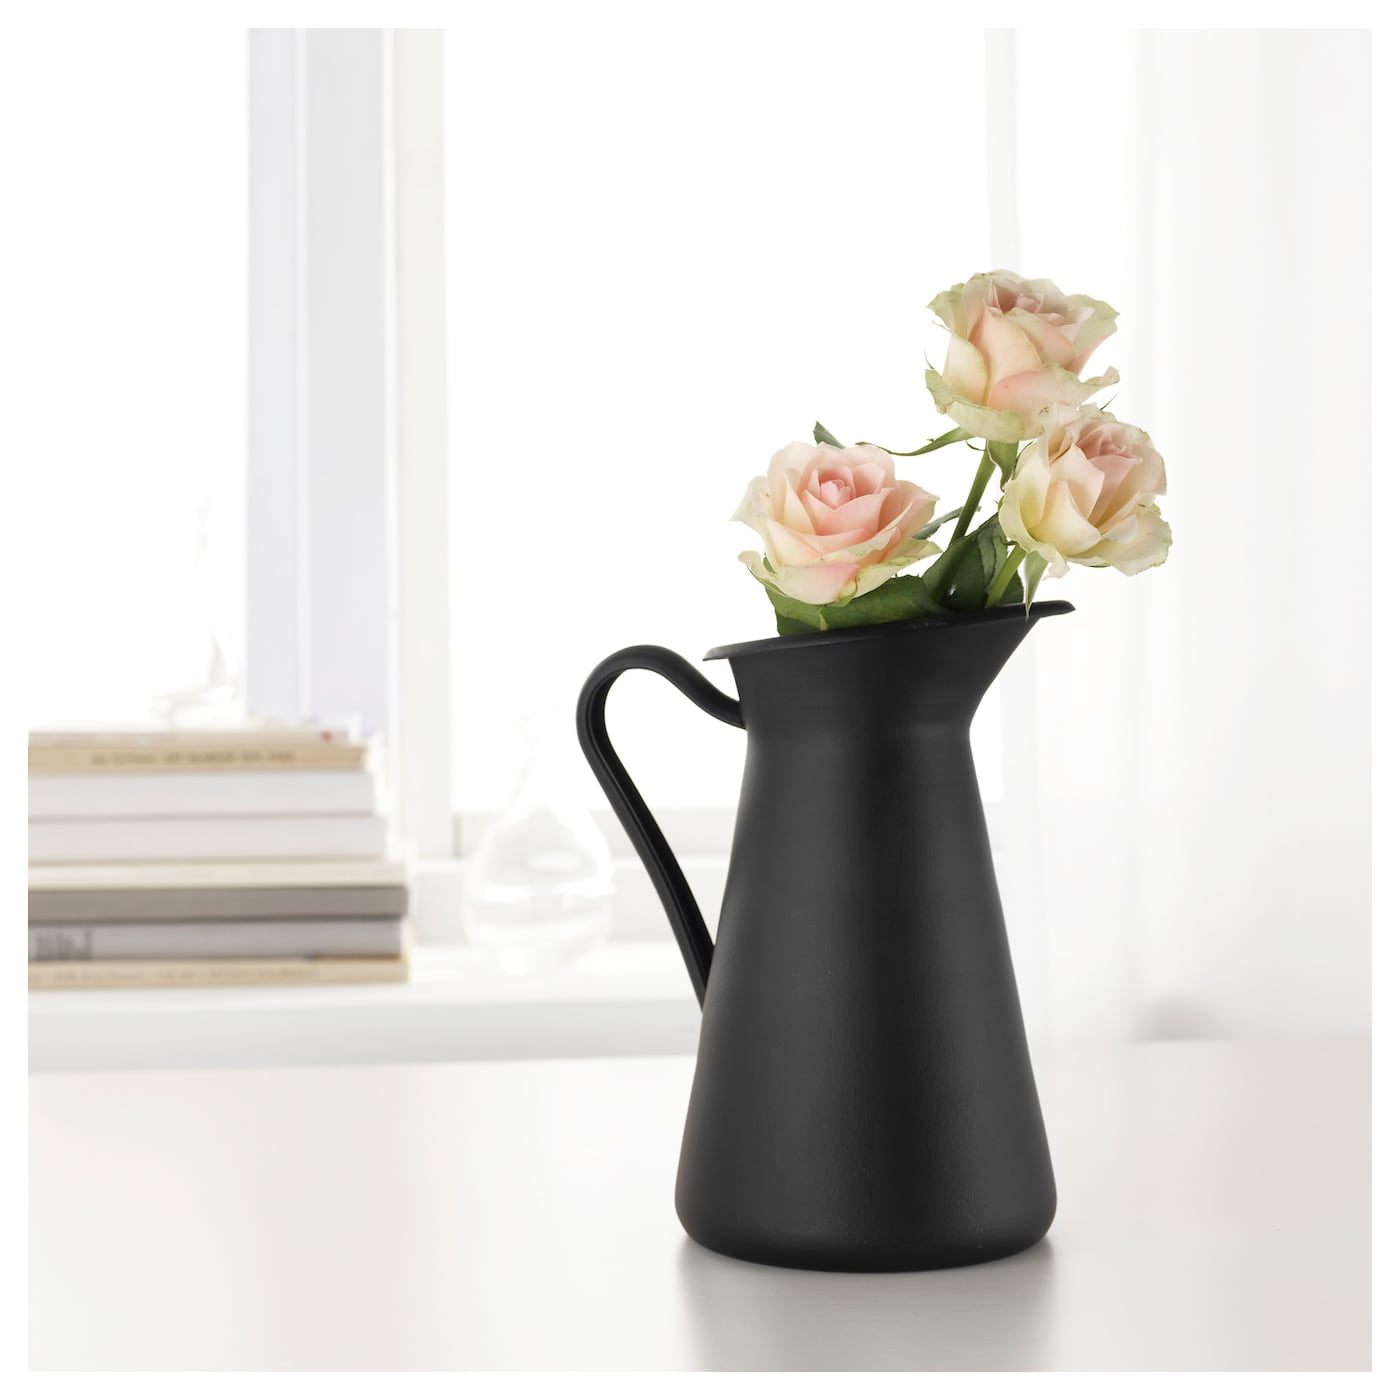 socker rt vase black 22 cm ikea. Black Bedroom Furniture Sets. Home Design Ideas